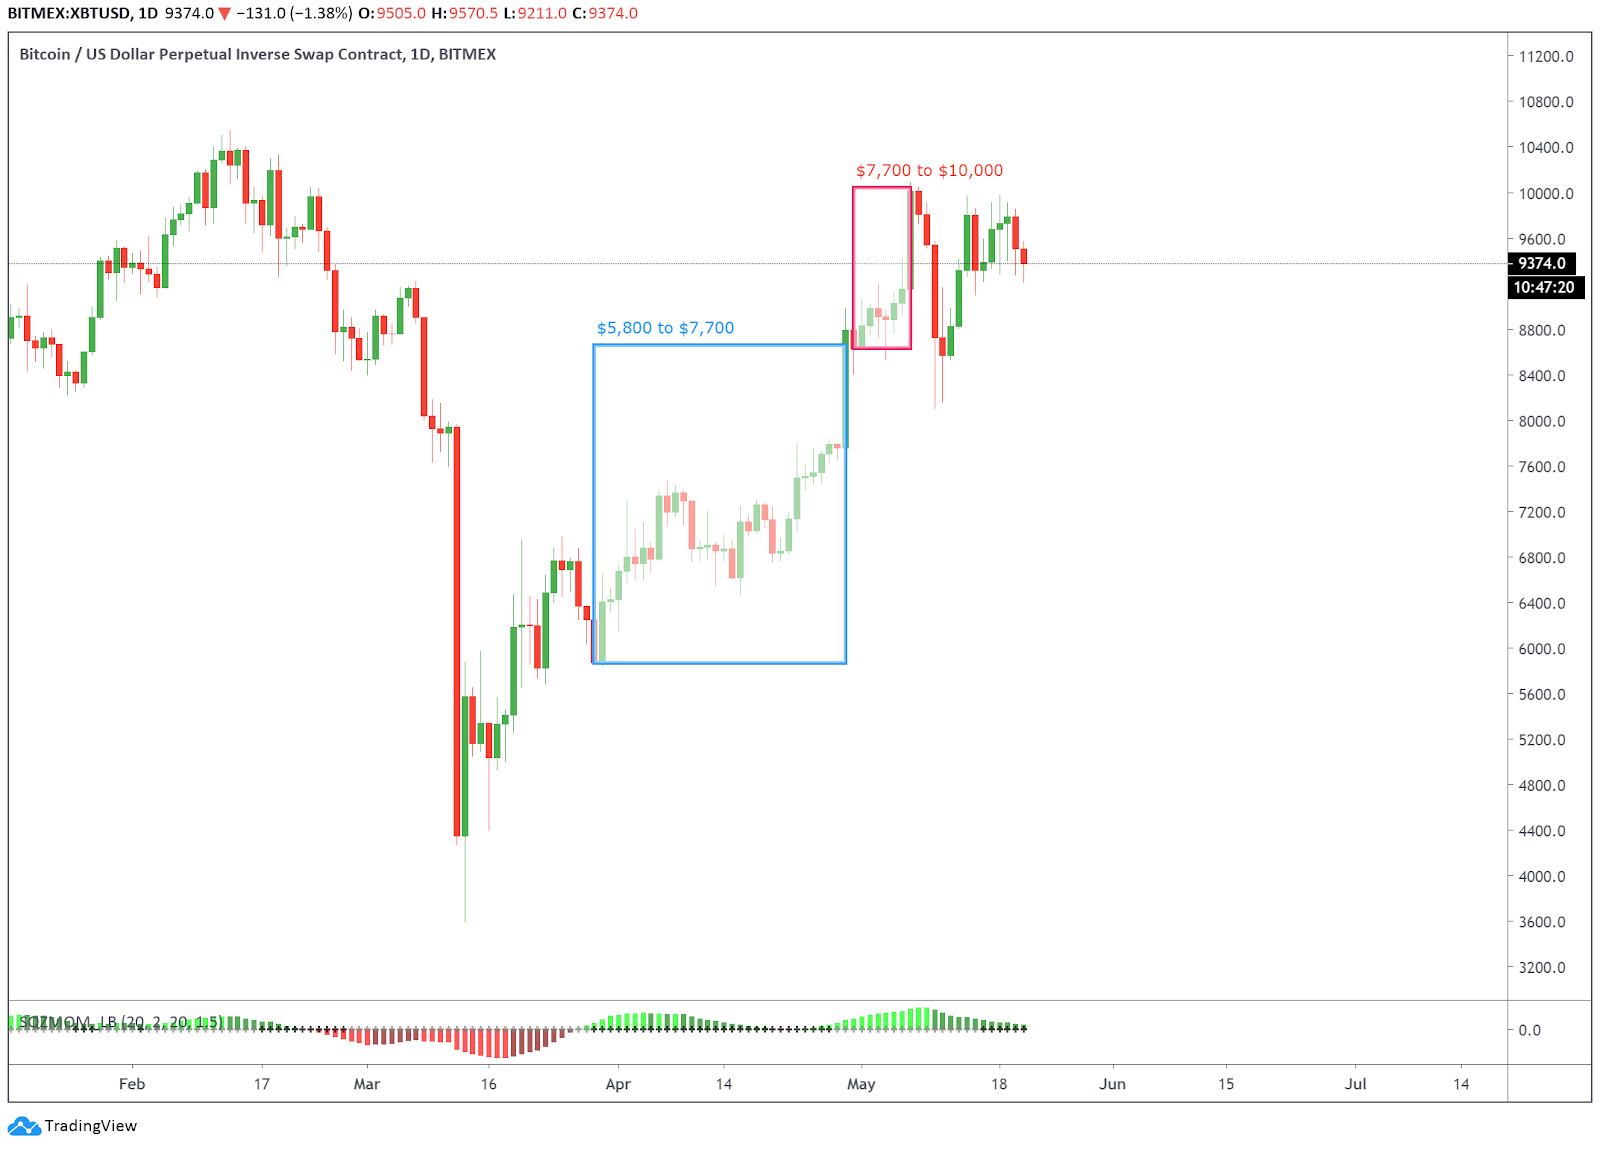 Comparison of Bitcoin price action from $5,800 to $7,700 and $7,700 to $10k. Source: Tradingview